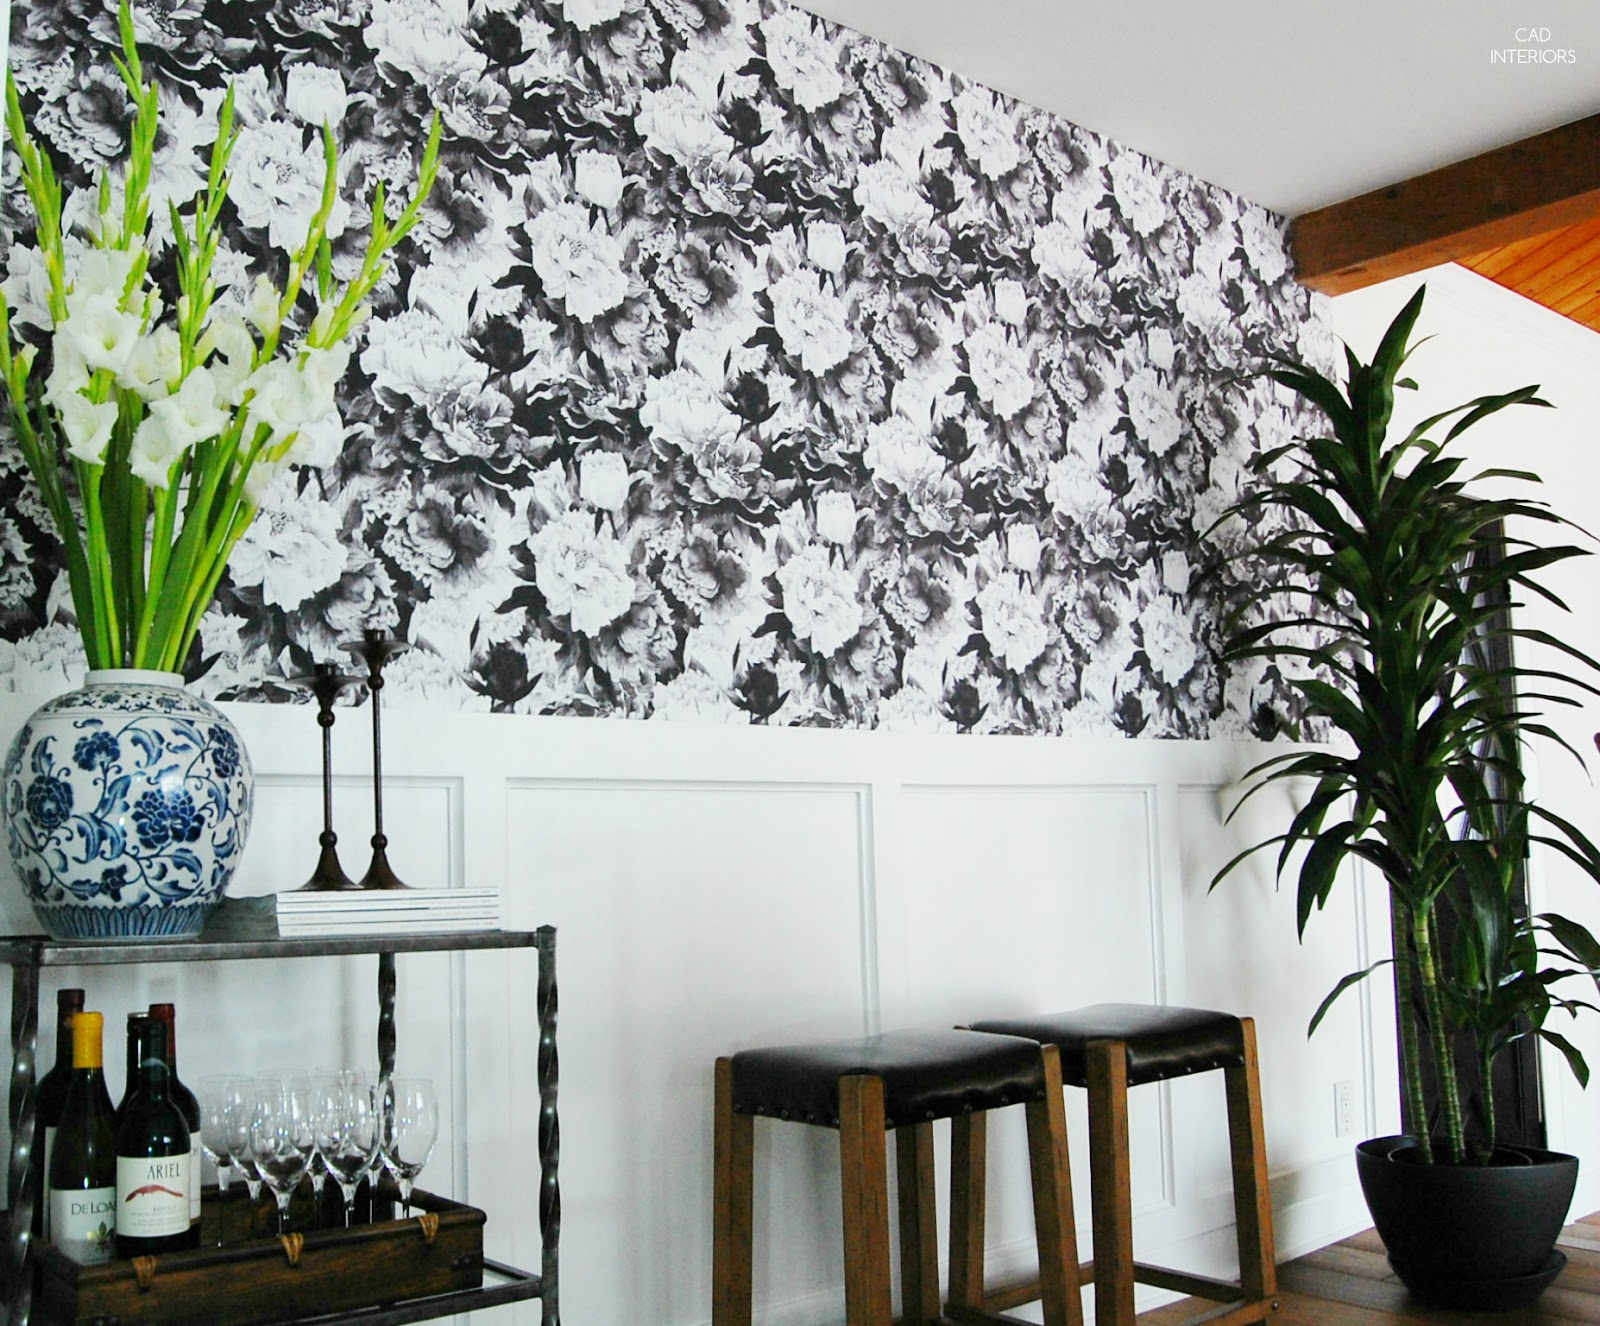 CAD INTERIORS - Affordable stylish interiors